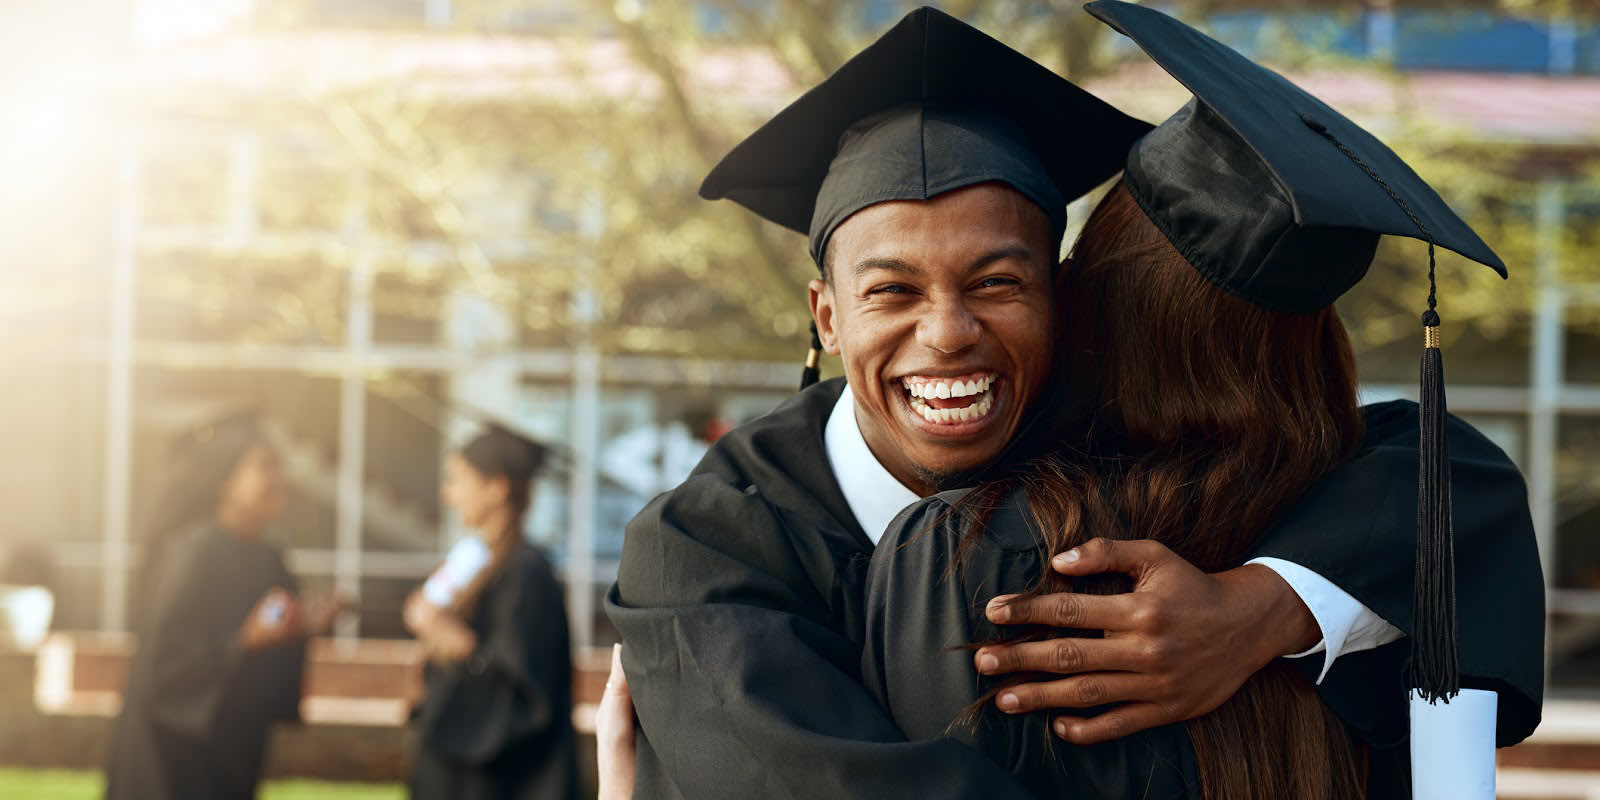 Young man wearing a graduation cap and gown hugging woman also wearing a cap and gown.